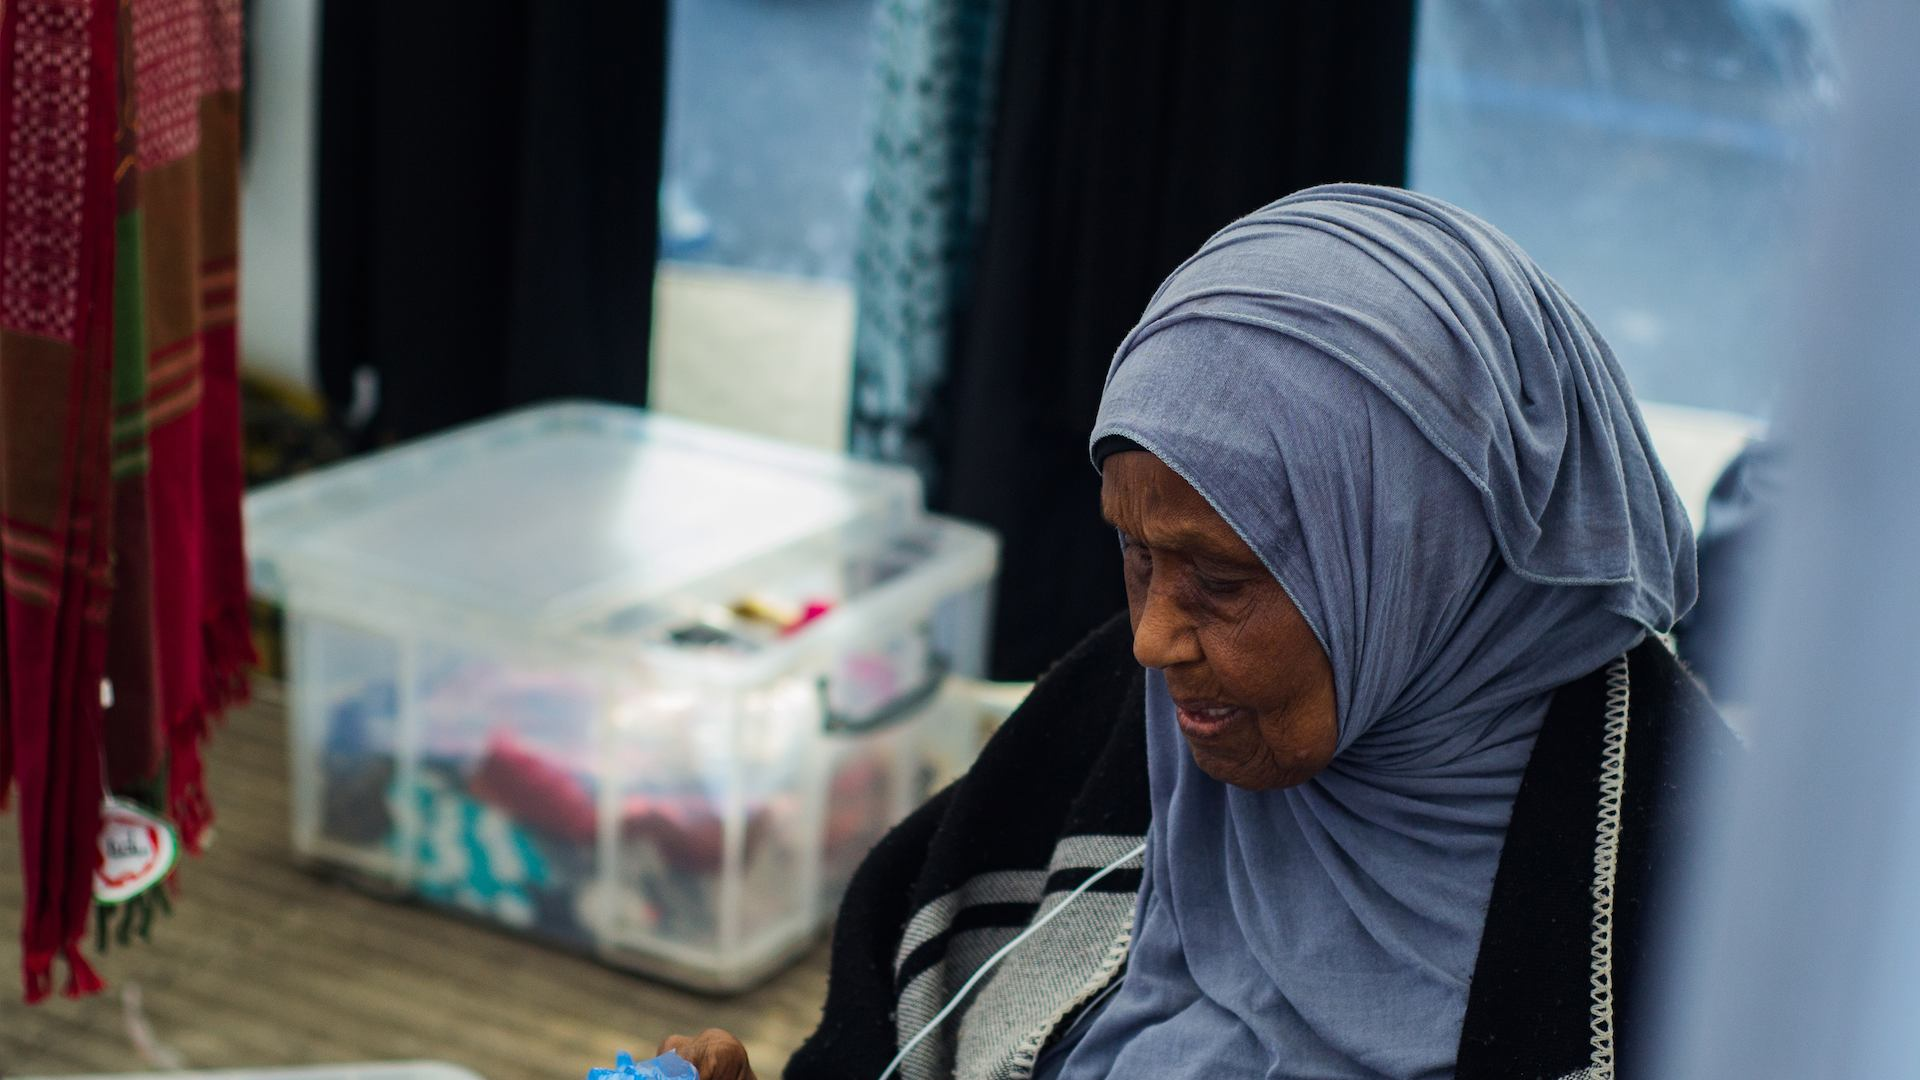 Older lady in hijab by stall in East Street Market